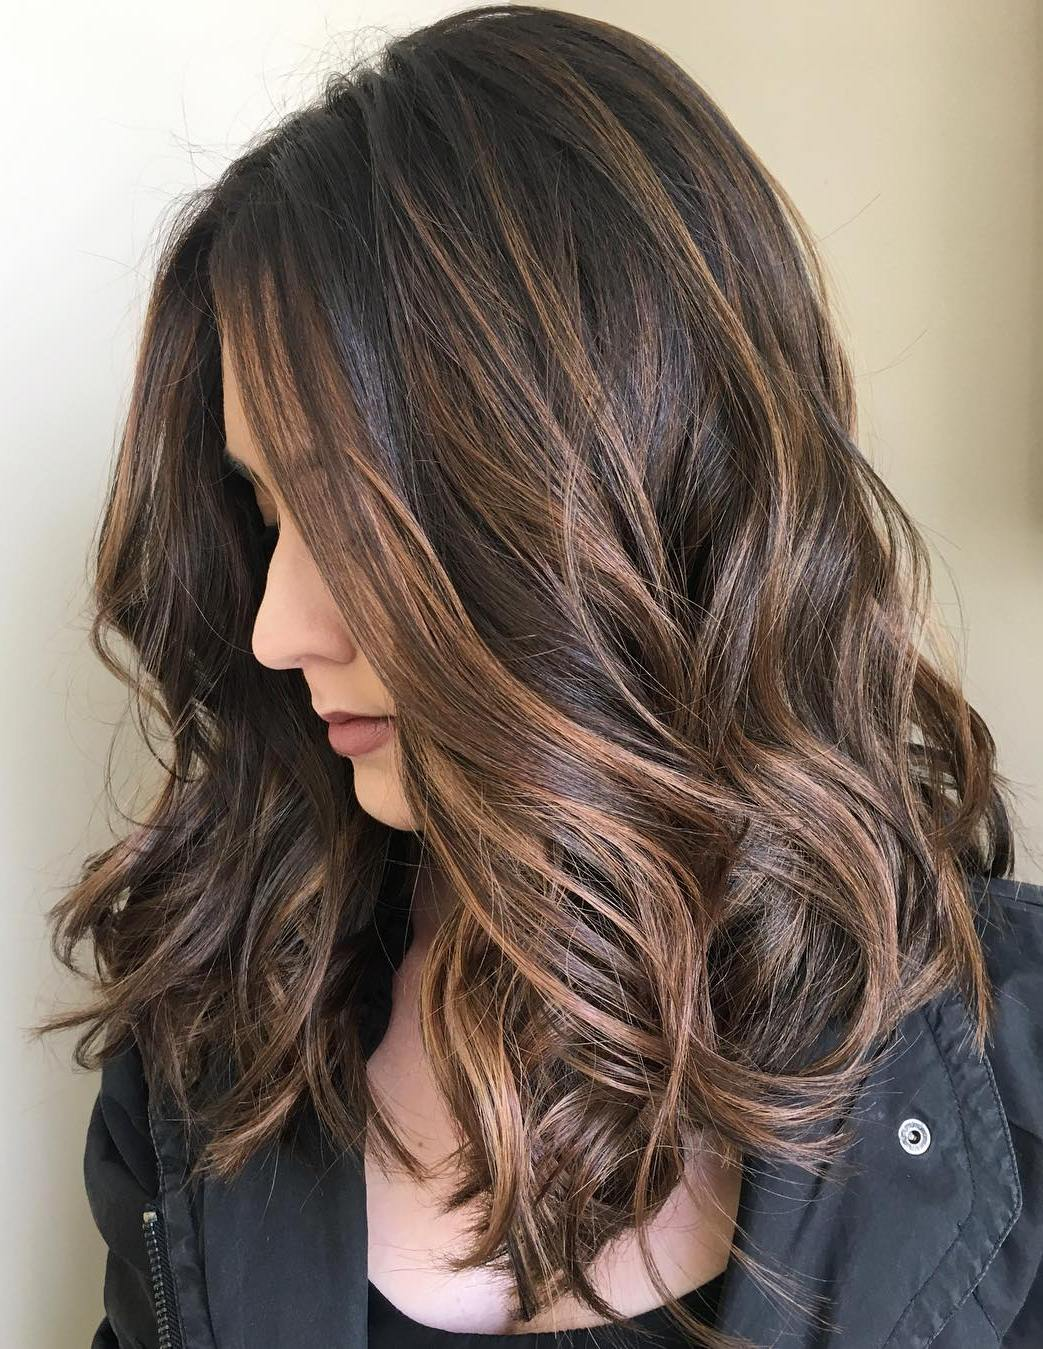 30 Balayage Highlights für einen ultimativen stilvollen Look